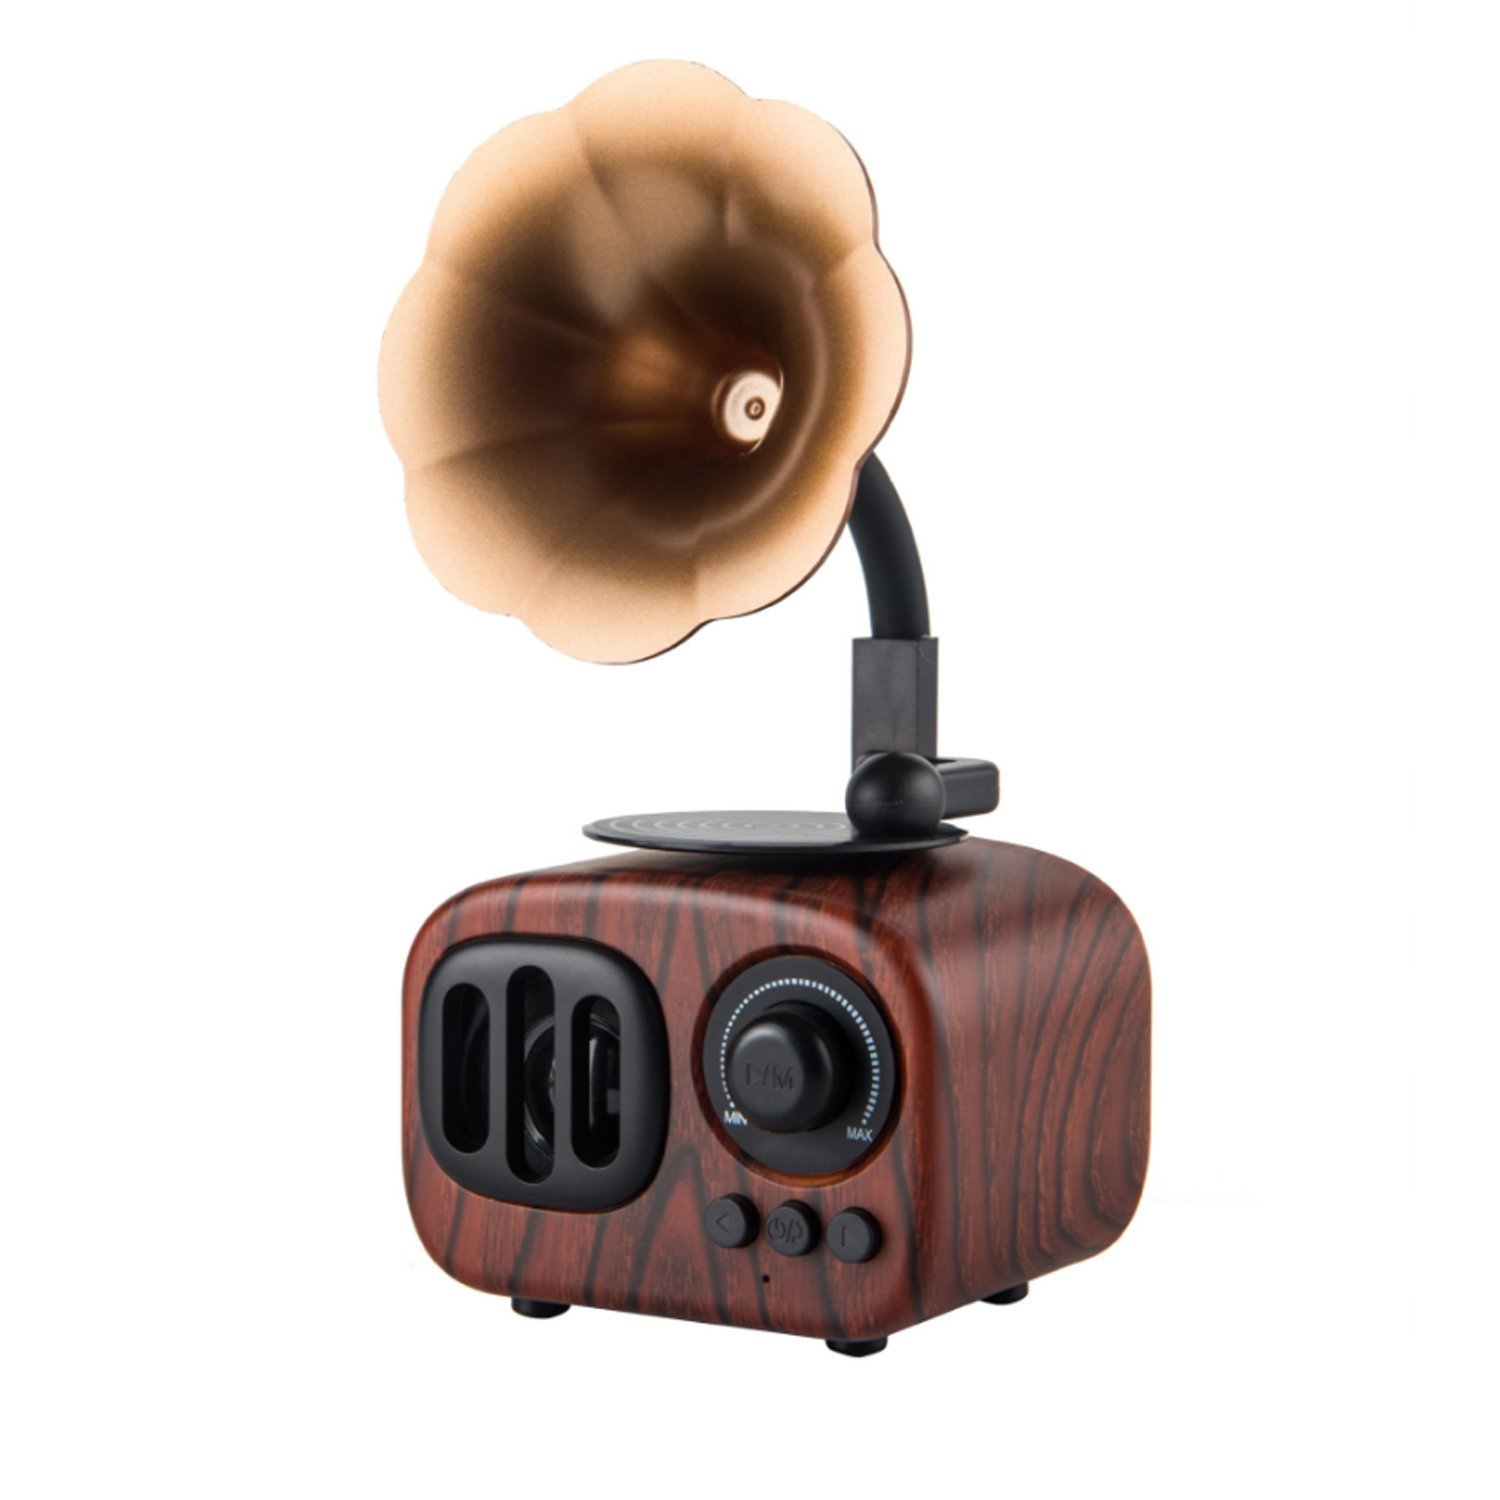 Portable Speakers,Julyfox Wooden Wirless Bluetooth Speakers Palm Small Size Rechargeable With FM Radio Gramophone Retro Design For Car Home Outdoor Travel Use Dark Wooden